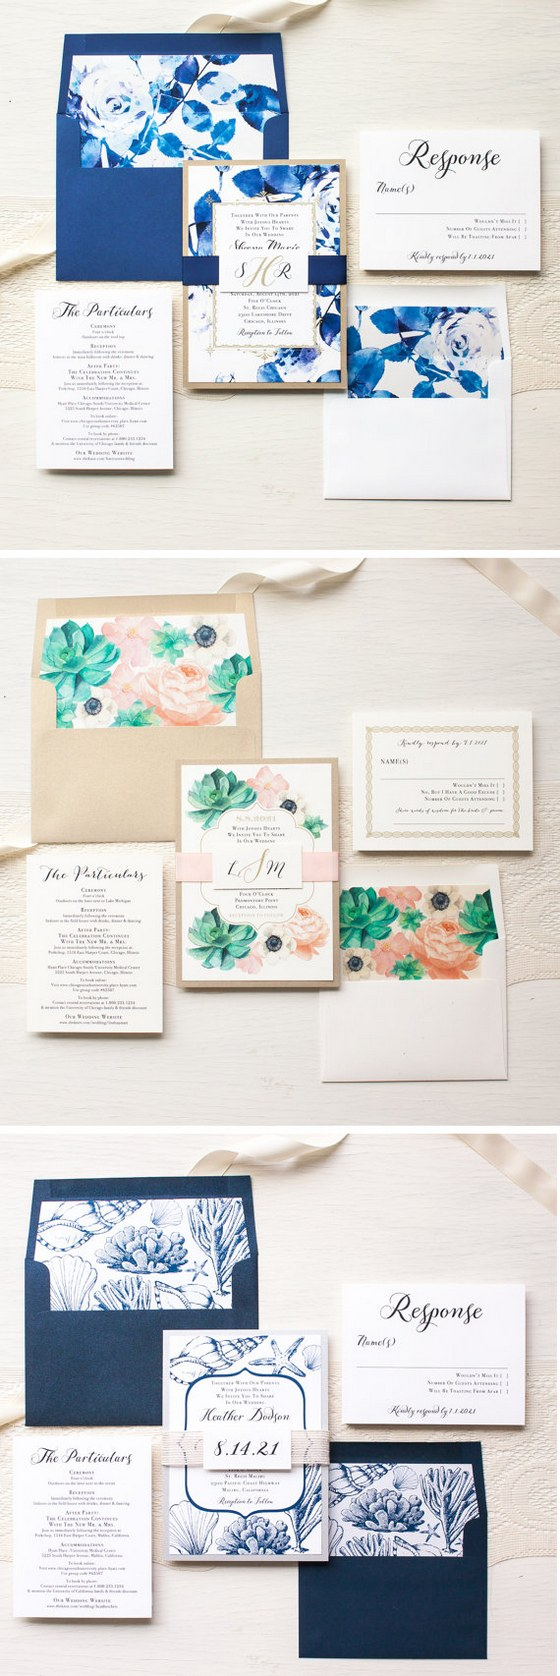 Watercolor Wedding Invitations 40 Watercolor Wedding Invitation Ideas You Will Love Deer Pearl